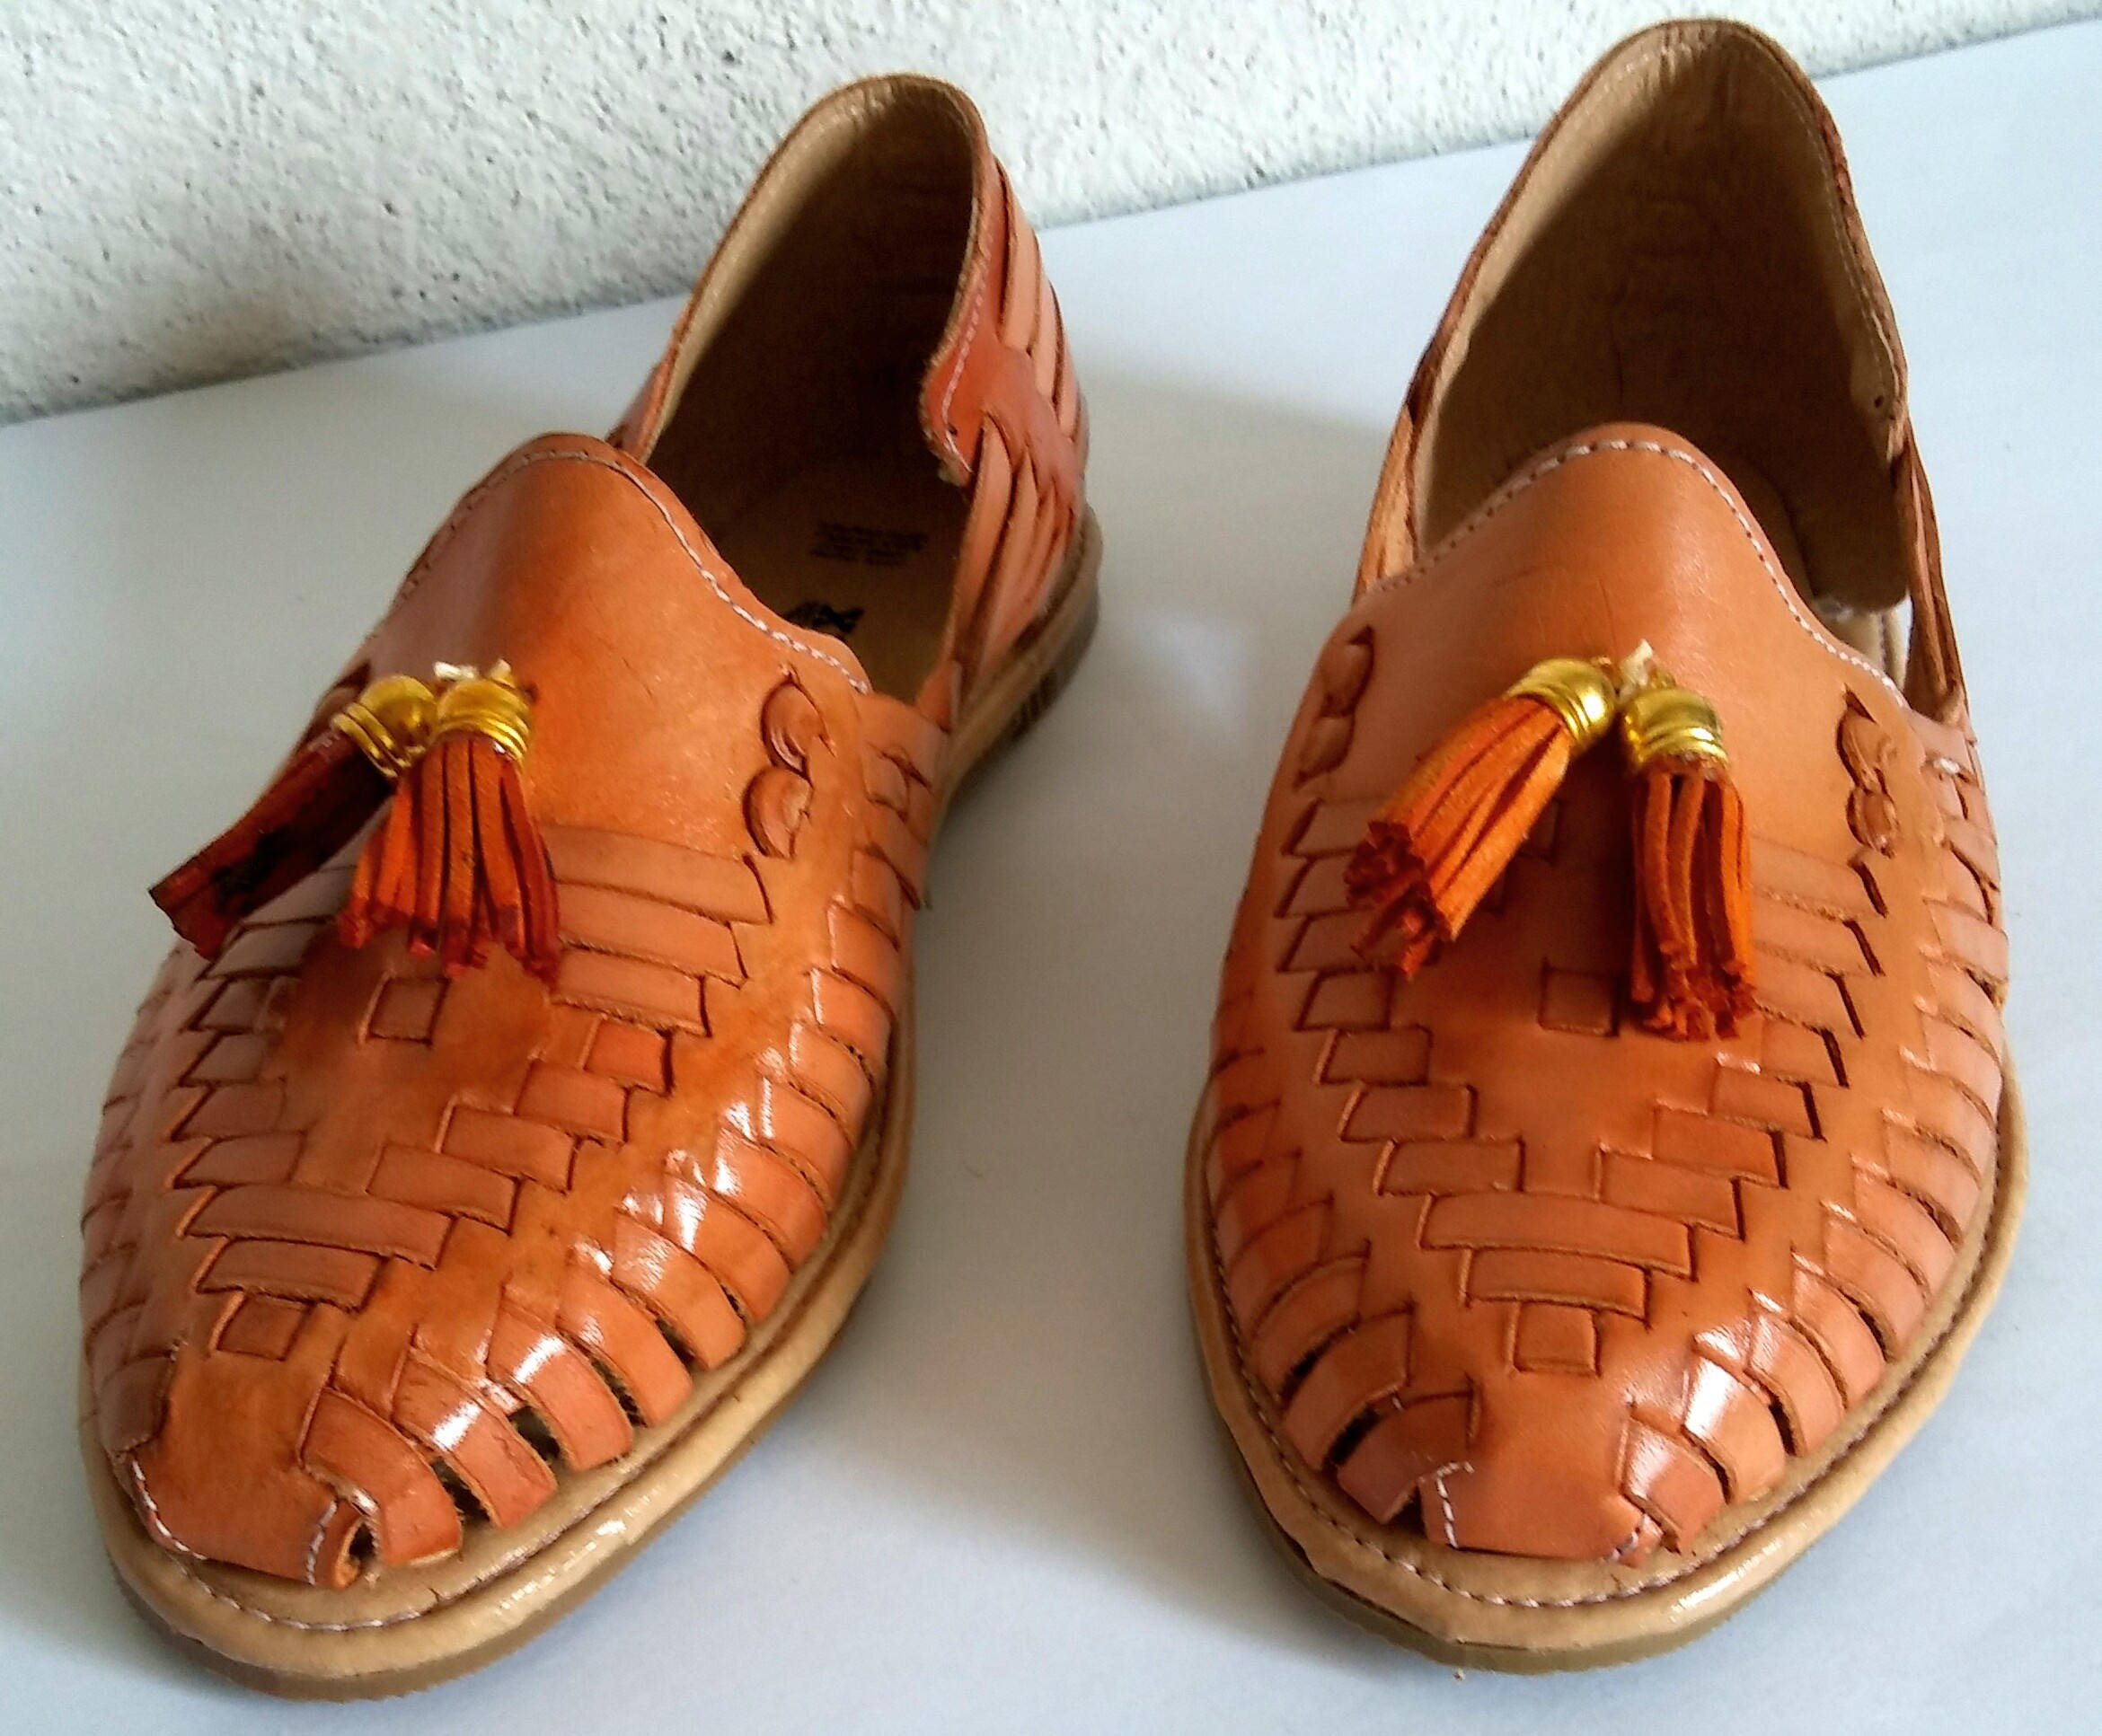 Mexican Sandals Mexican Huaraches Sandals Mexican Shoes Us 7